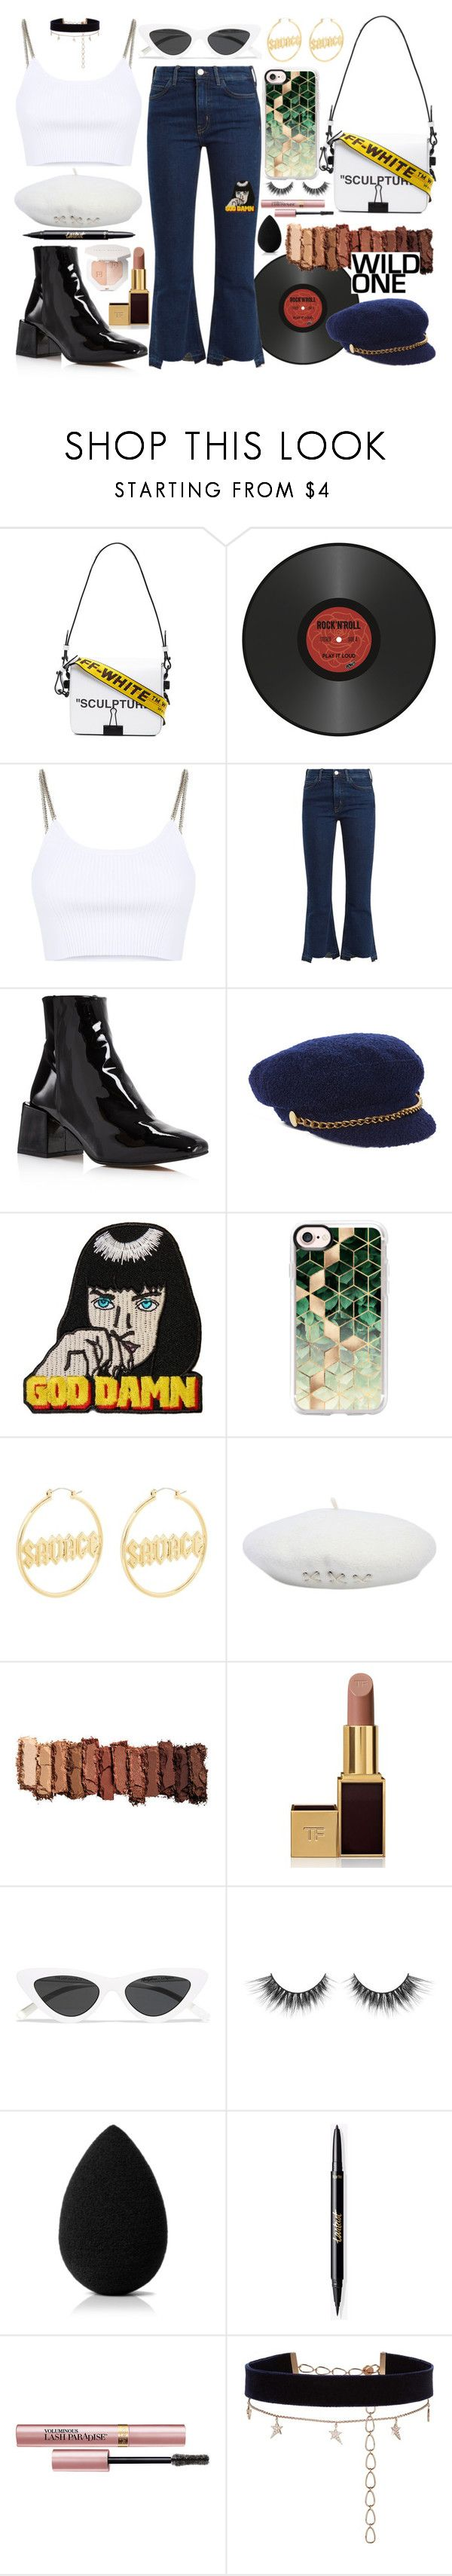 """""""ALL THE STARS"""" by sarapmary on Polyvore featuring Off-White, Pôdevache, Alexander Wang, M.i.h Jeans, LOQ, Scala, Wallace, Casetify, Urban Decay and Tom Ford"""